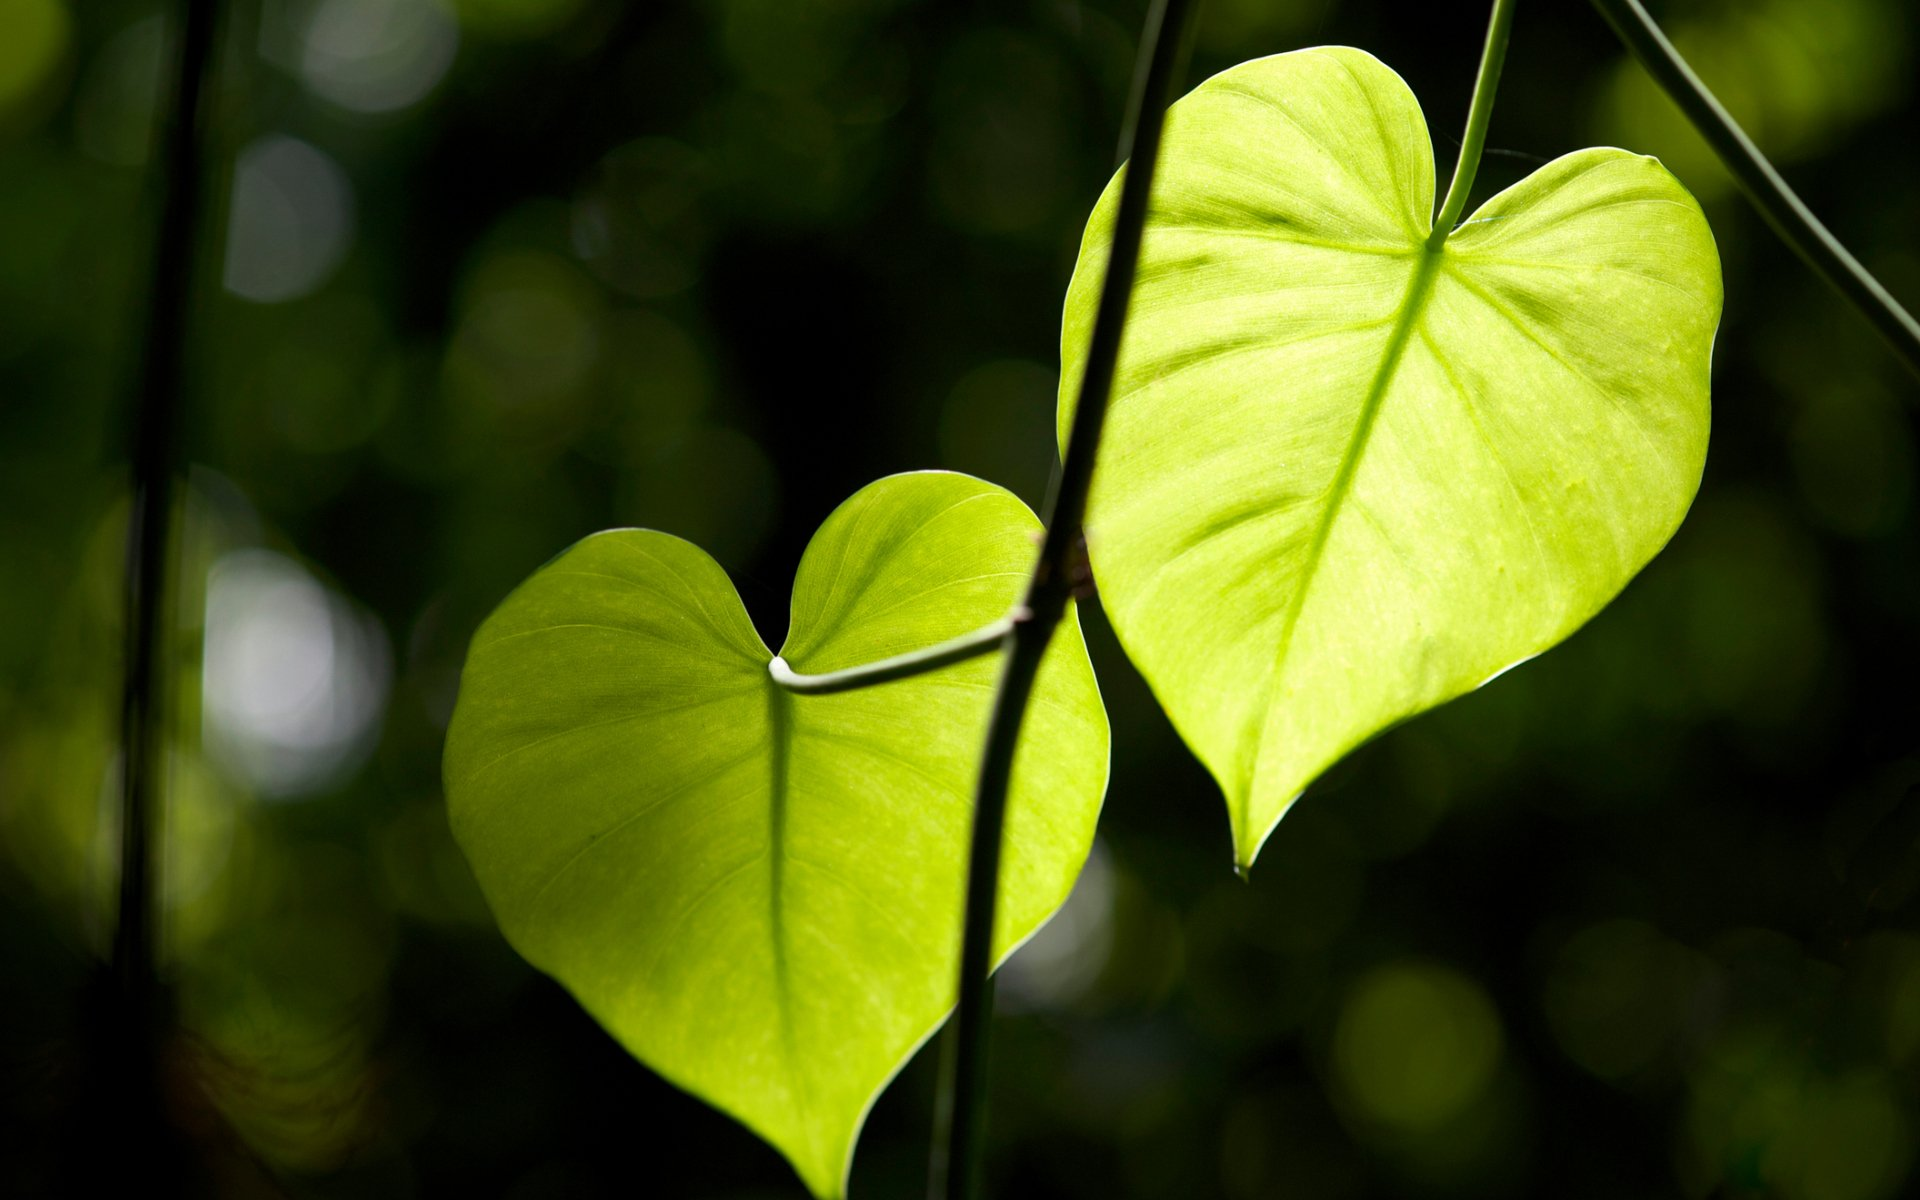 Heart Shaped Natural Images Desktop Wallpapers